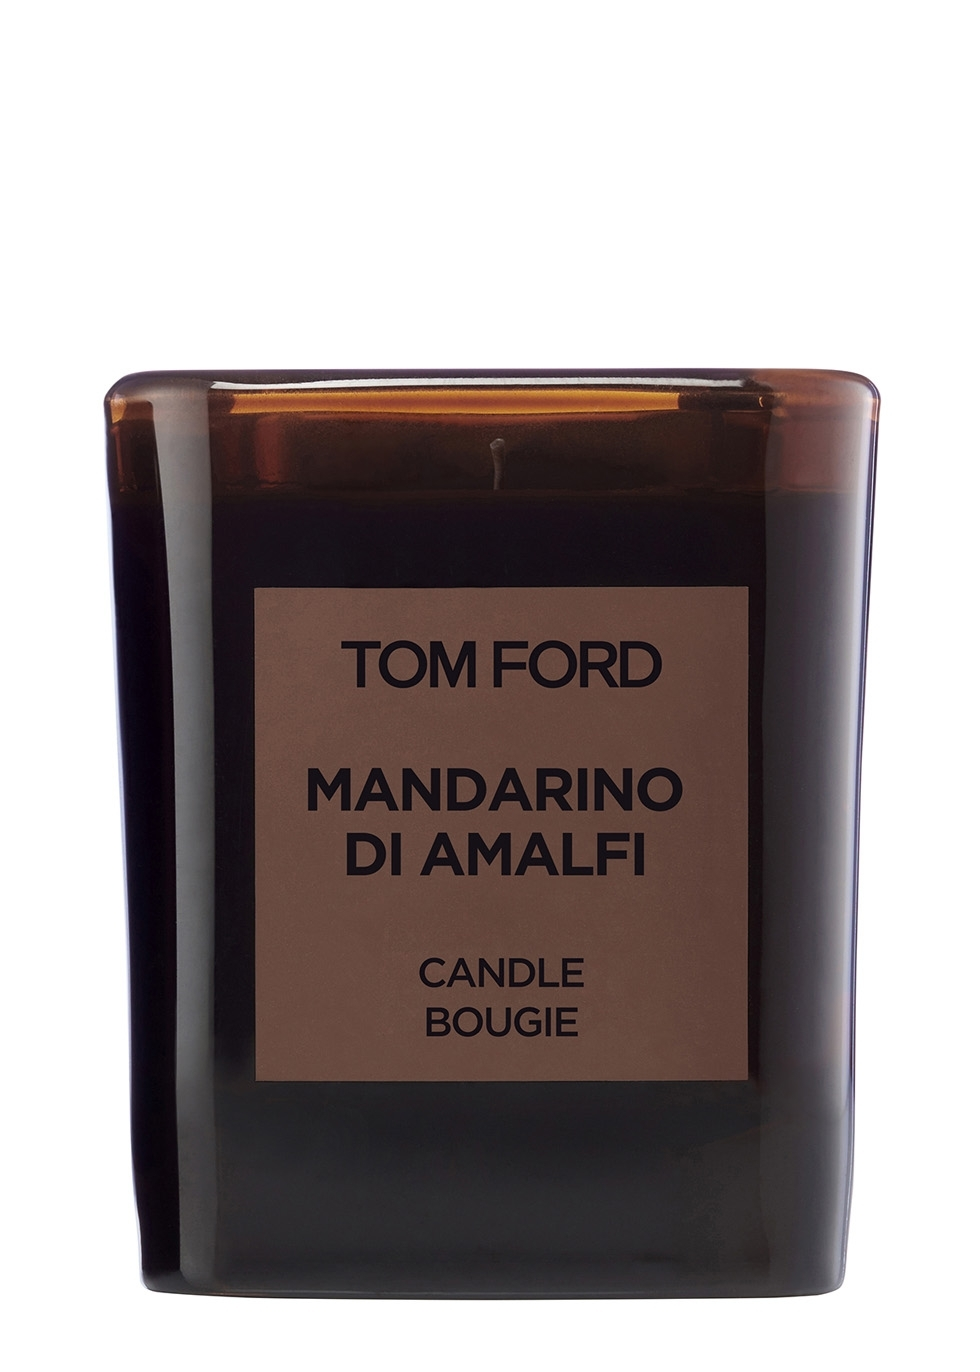 tom ford mandarino di amalfi candle harvey nichols. Black Bedroom Furniture Sets. Home Design Ideas